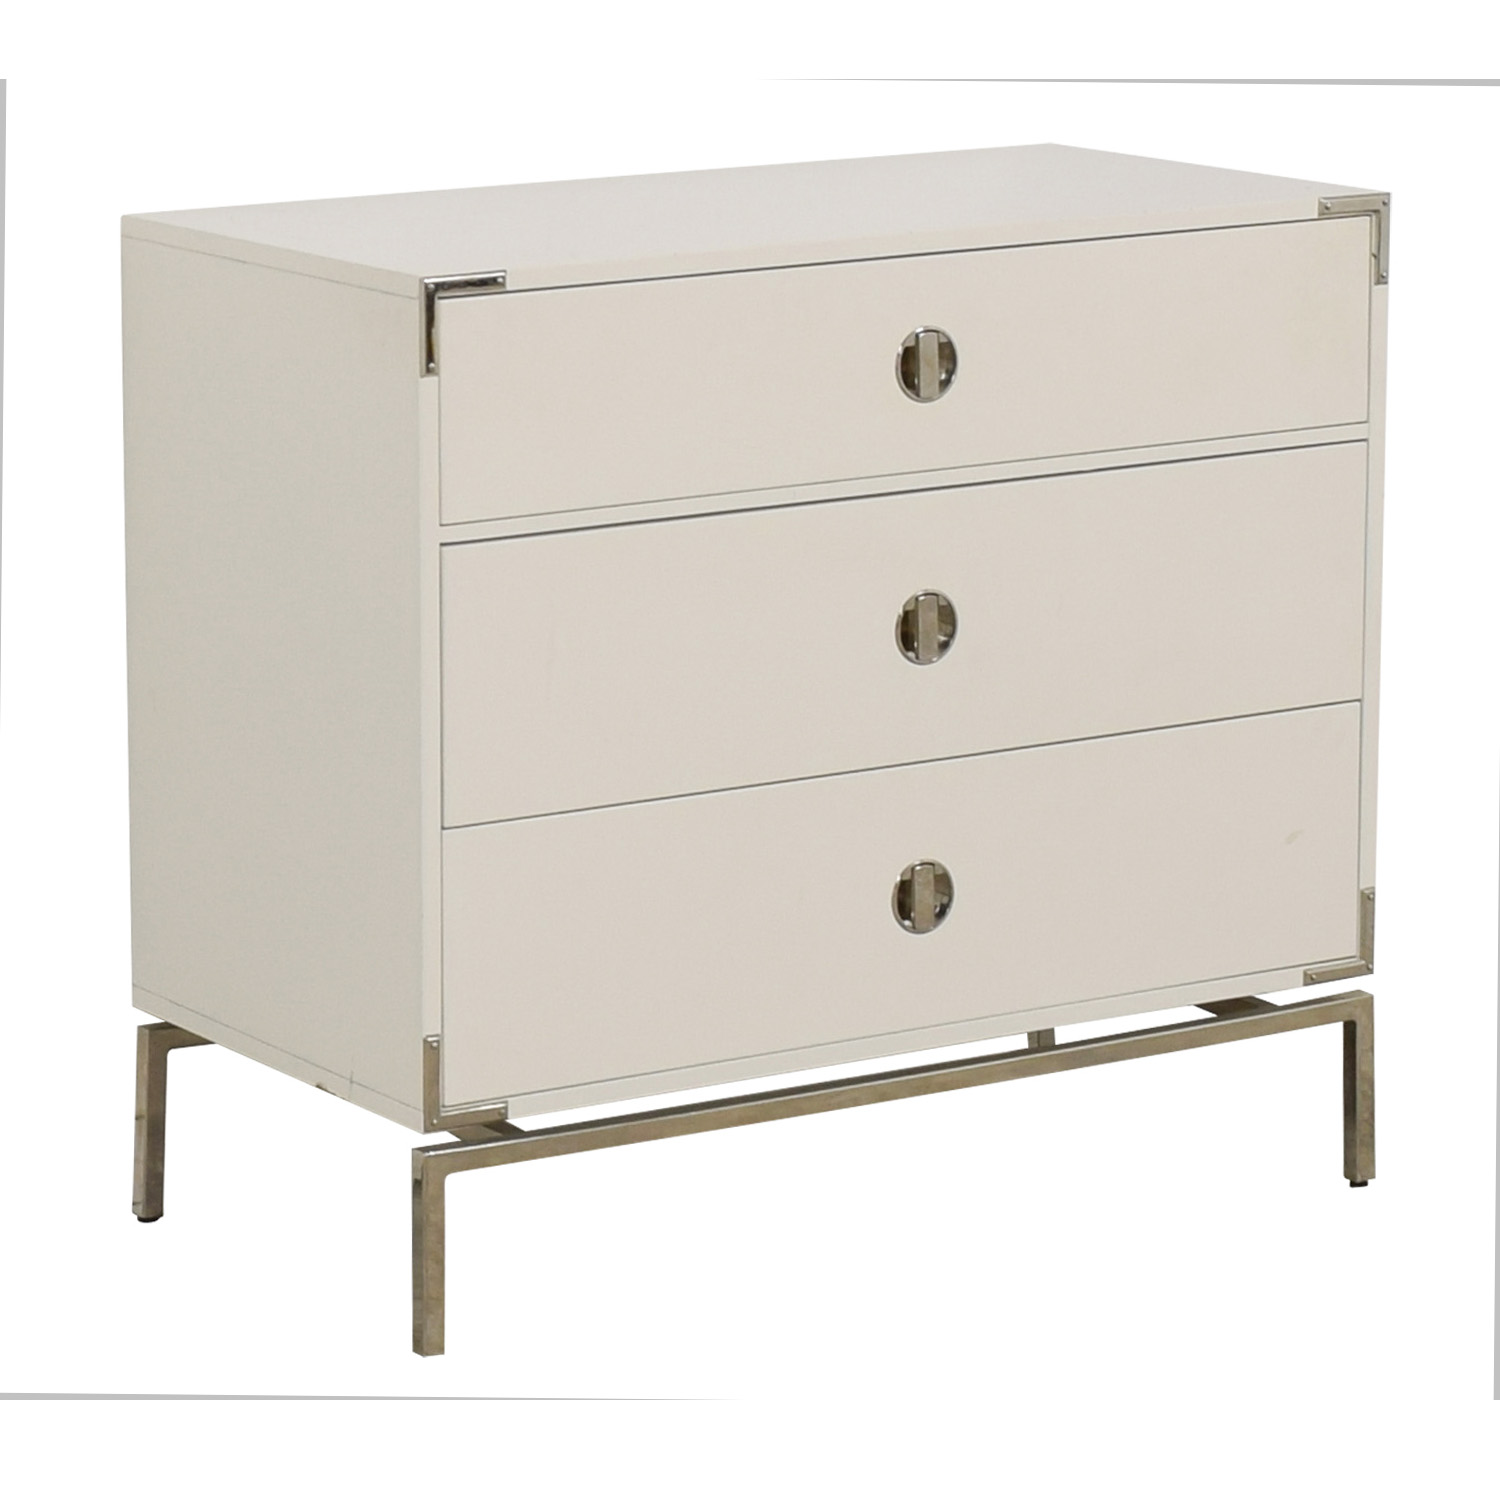 West Elm West Elm Malone Campaign White Lacquer Three-Drawer Dresser price